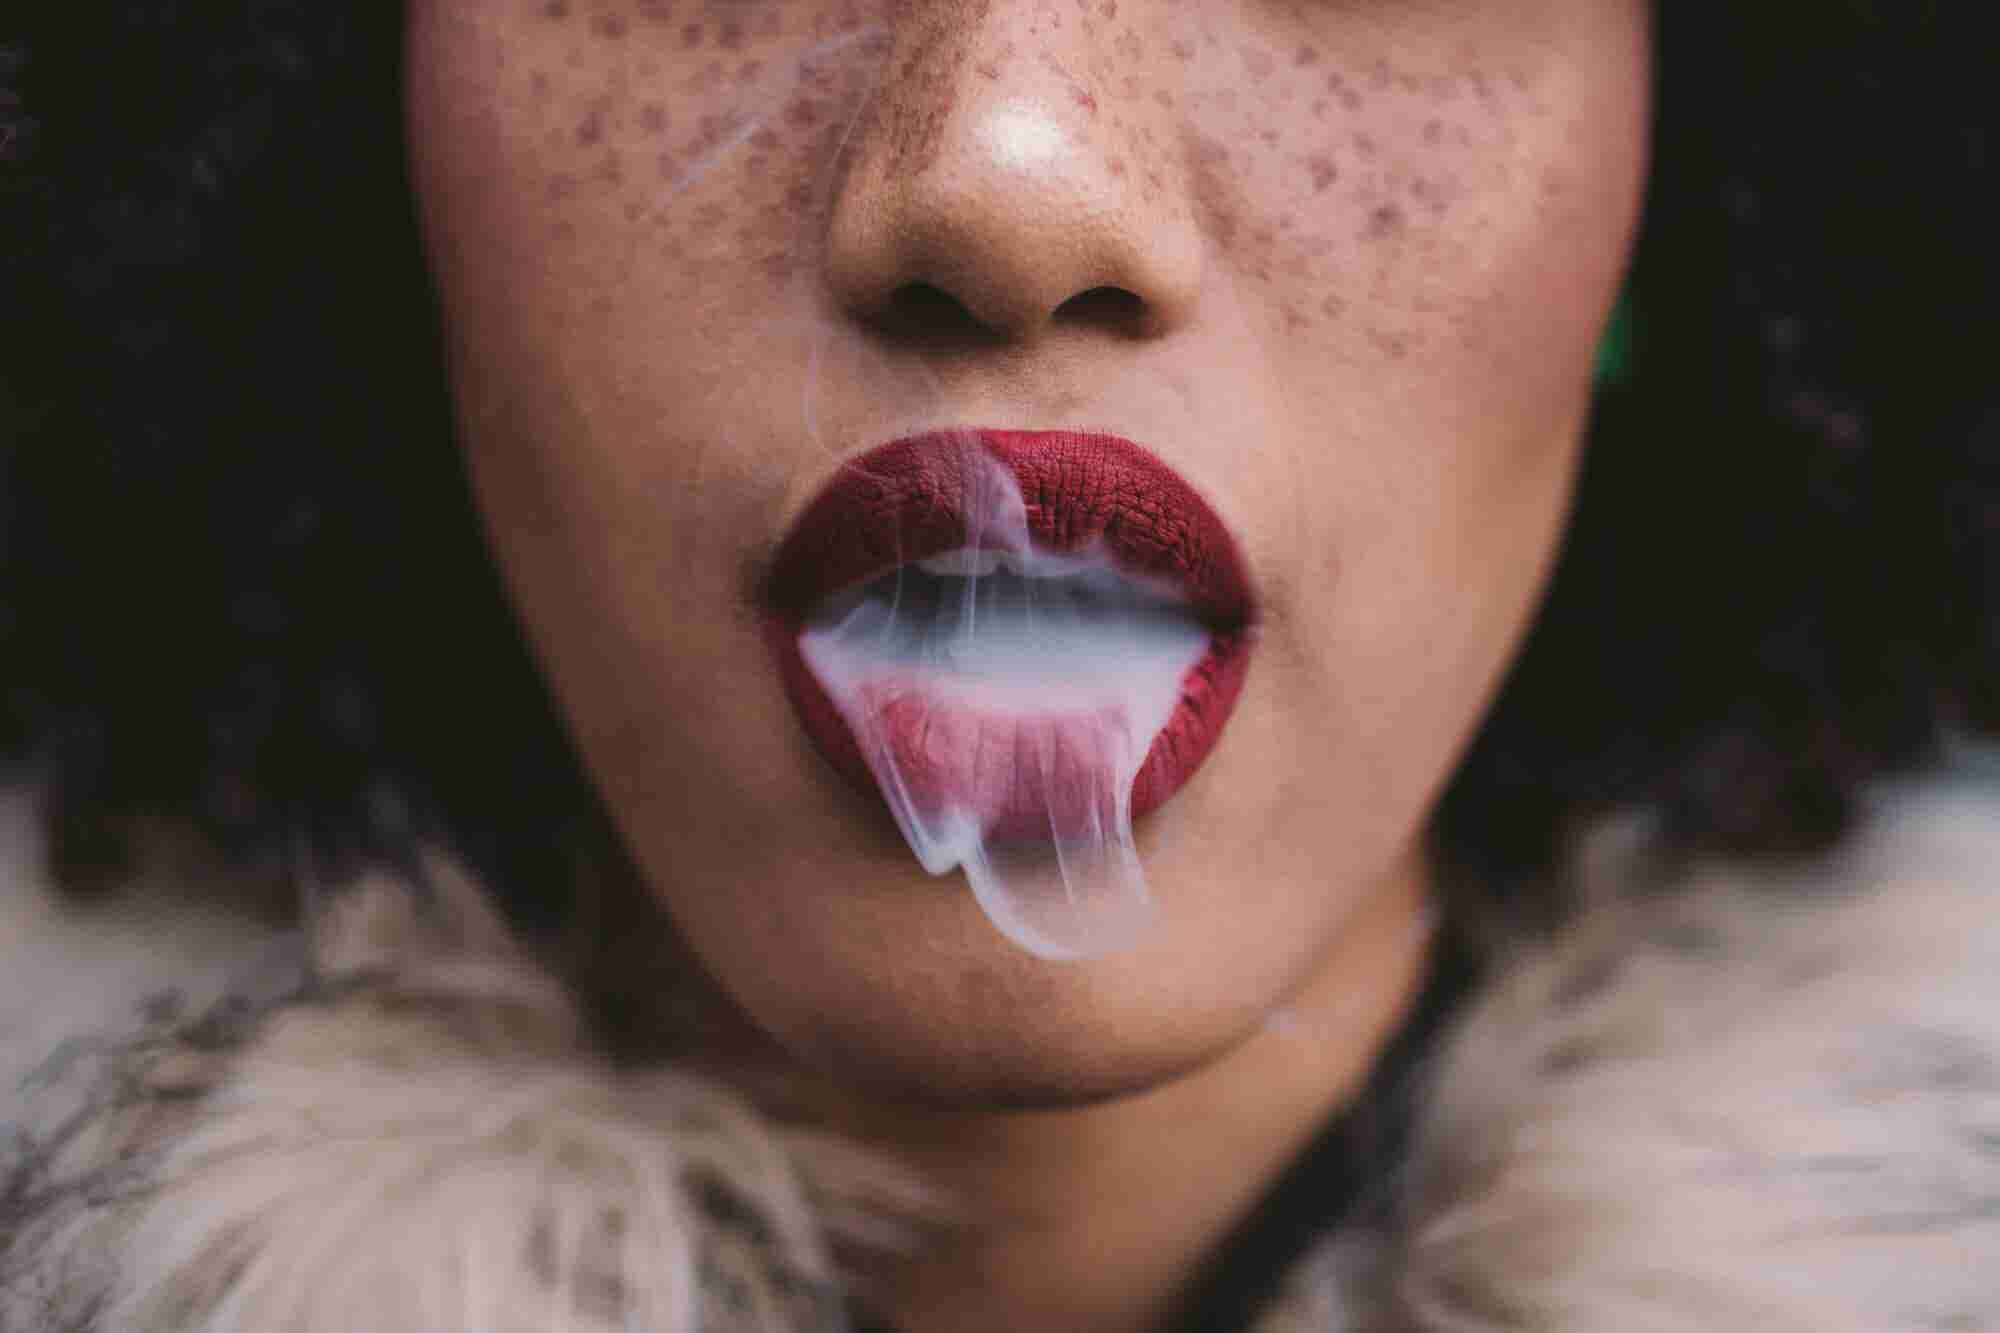 Women Are Influencing the Cannabis Industry Both as Entrepreneurs and Consumers